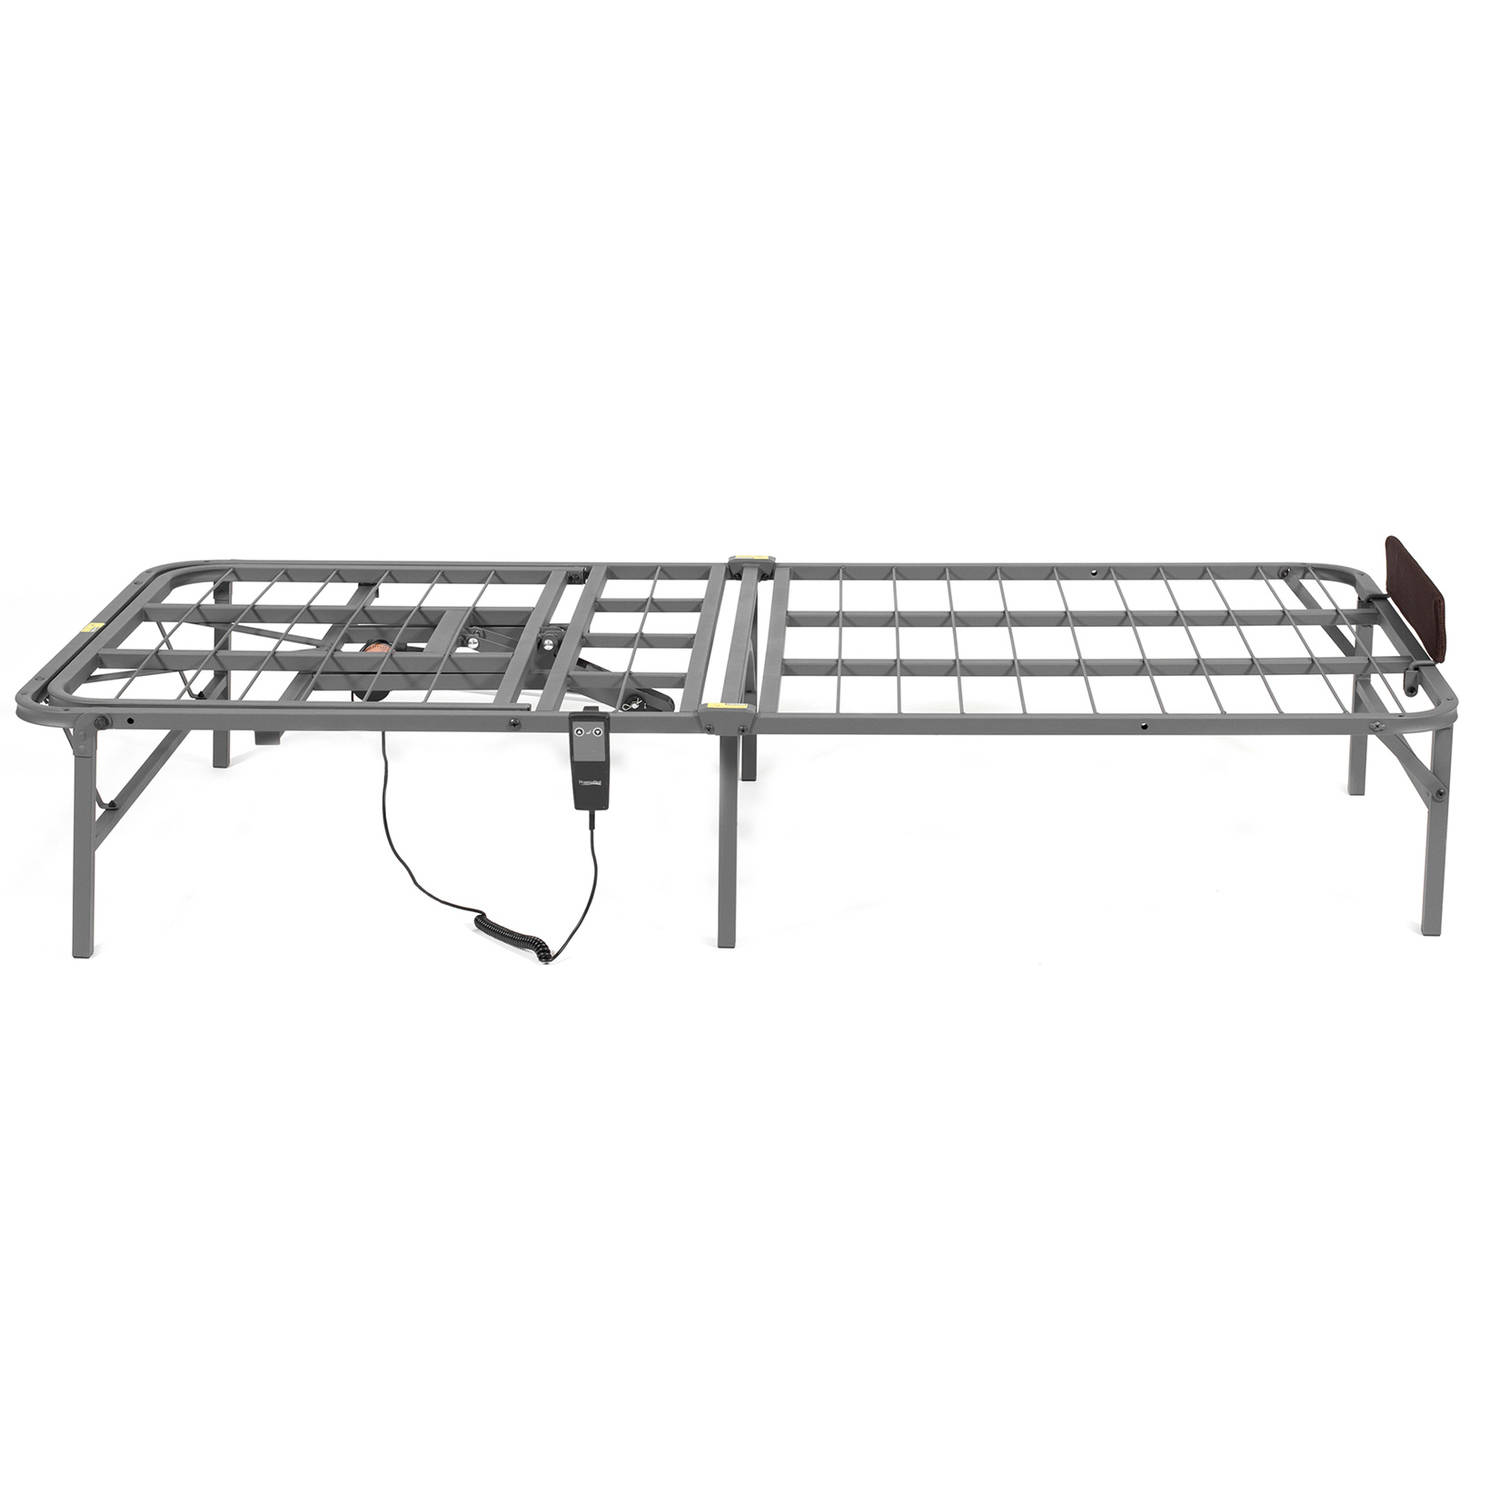 Adjustable Bed Frame Motor : King bed frame adjustable electric motor lift remote